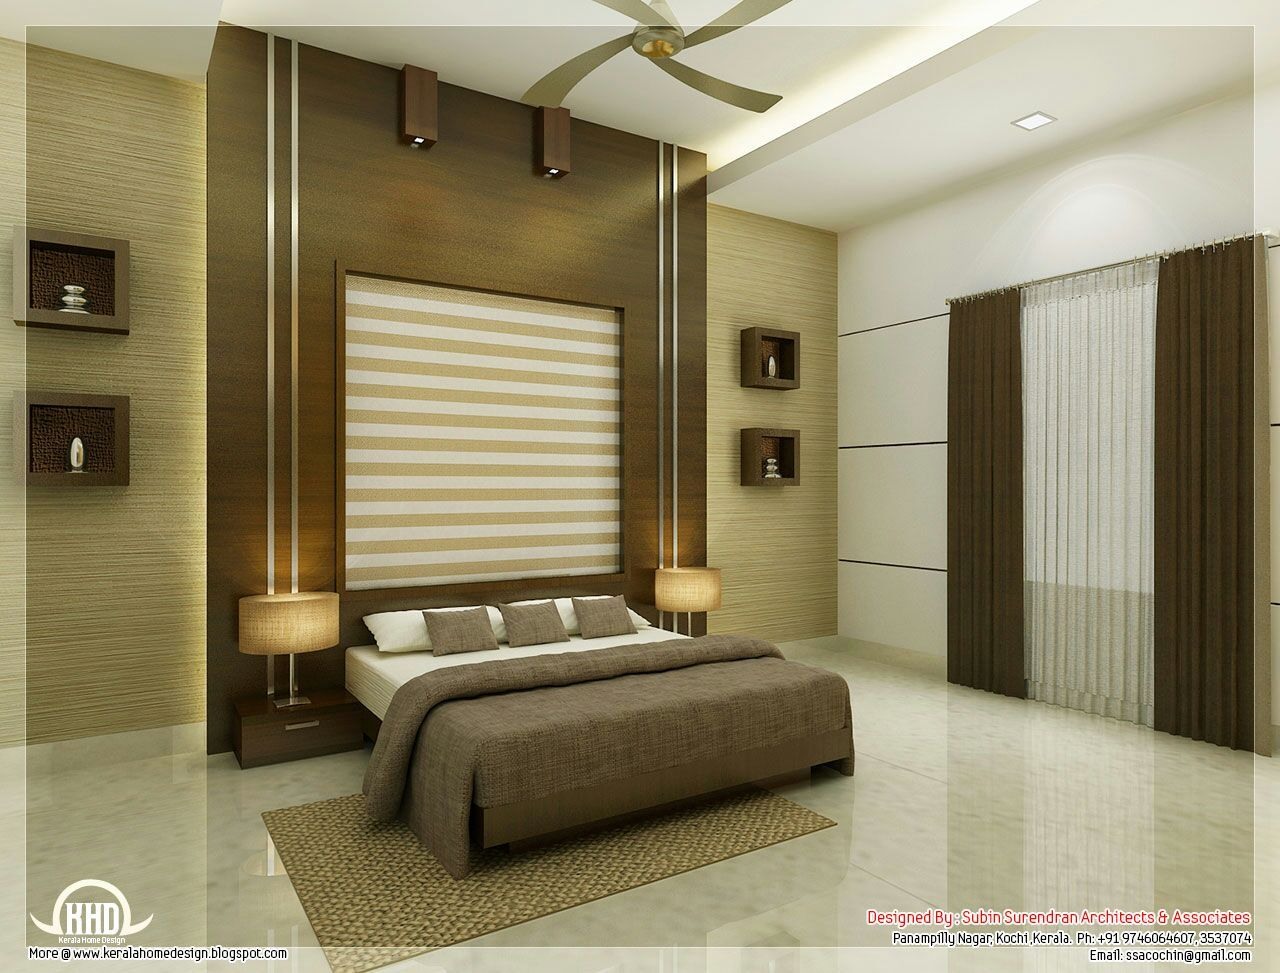 Pin By Grandcity Plaza On Grand City Pinterest Pvc Panels Average Cost Of Rewiring A 3 Bed House Bedroom Rewire